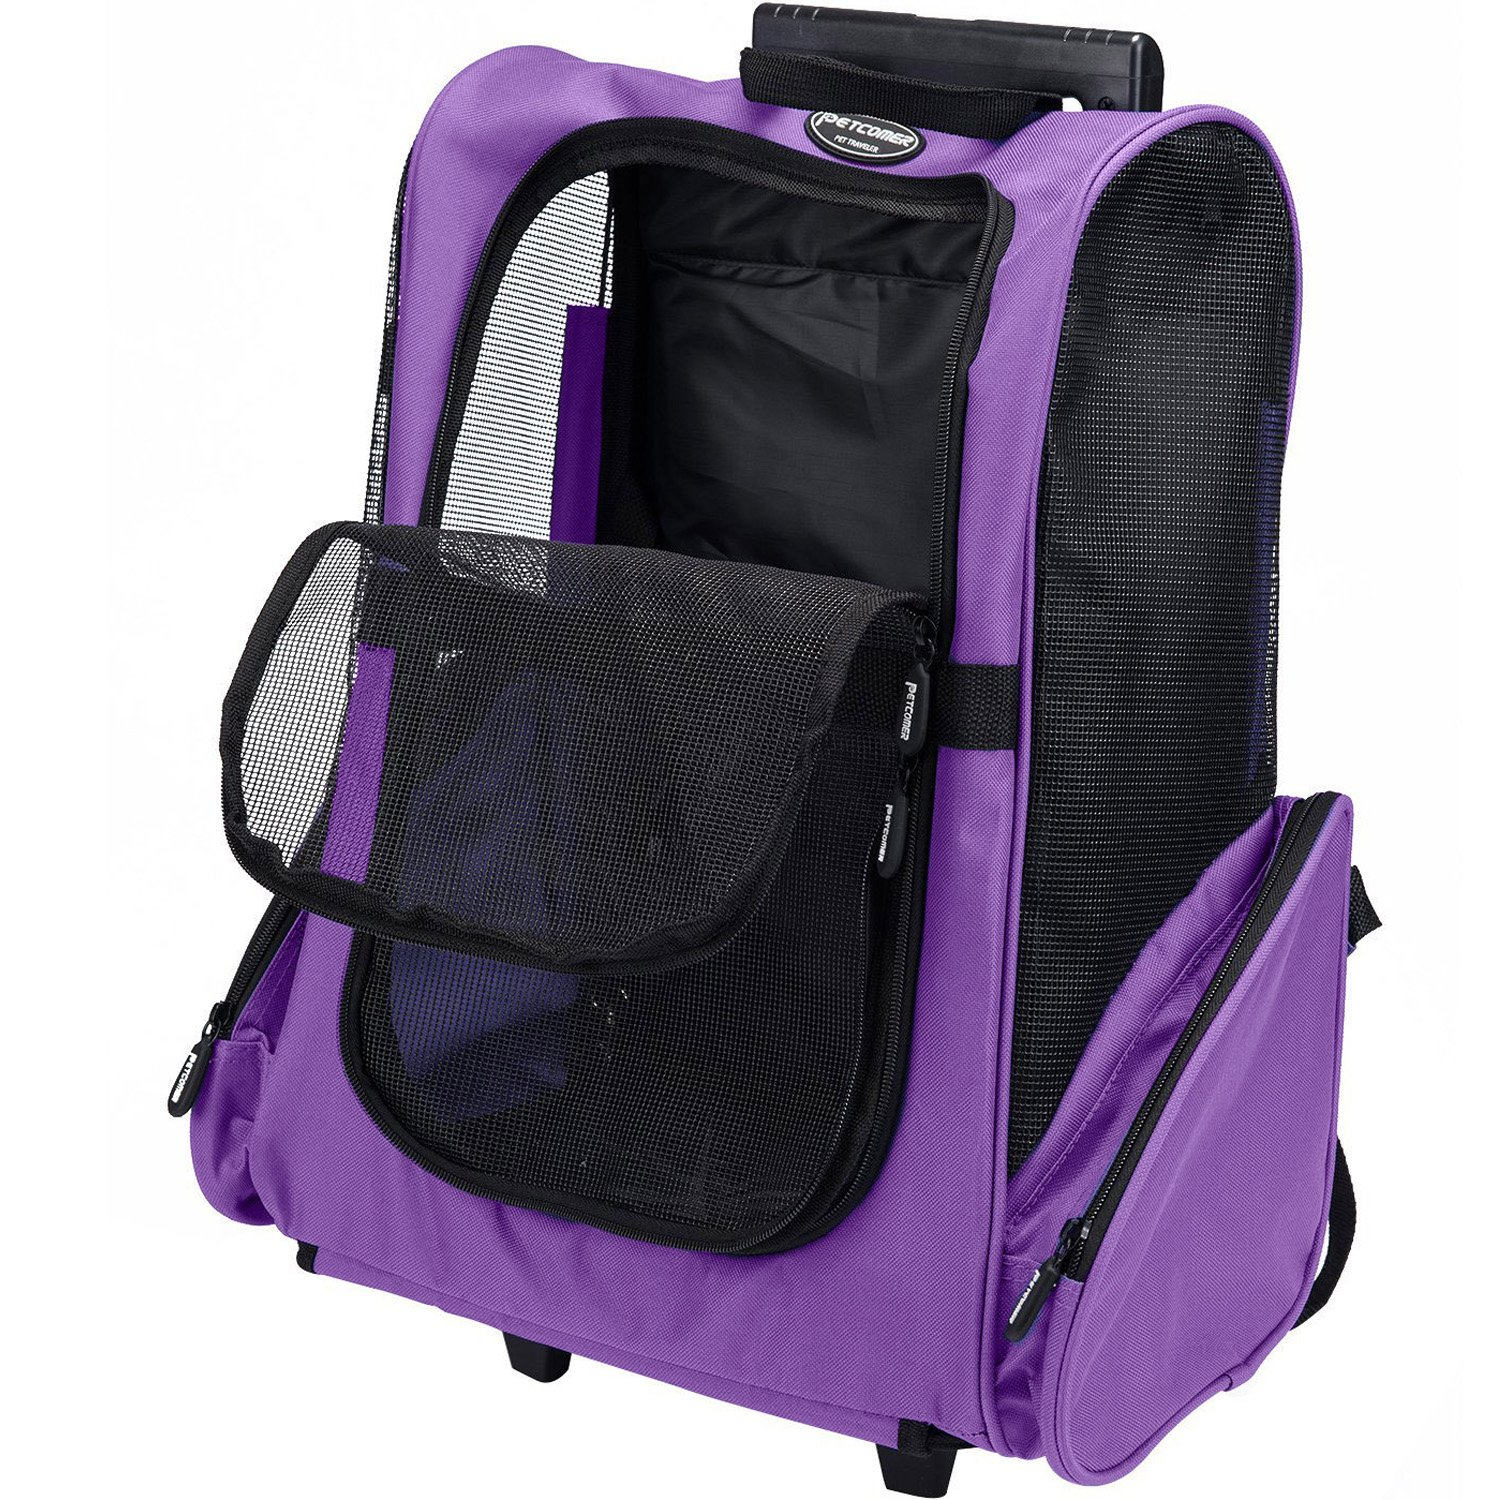 Pettom Roll Around 4-in-1 Pet Carrier Travel Backpack for Dogs & Cats&Small Animals Travel Tote Airline Approved (Small-Hold pet up to 10 lbs, Purple) by Pettom (Image #3)